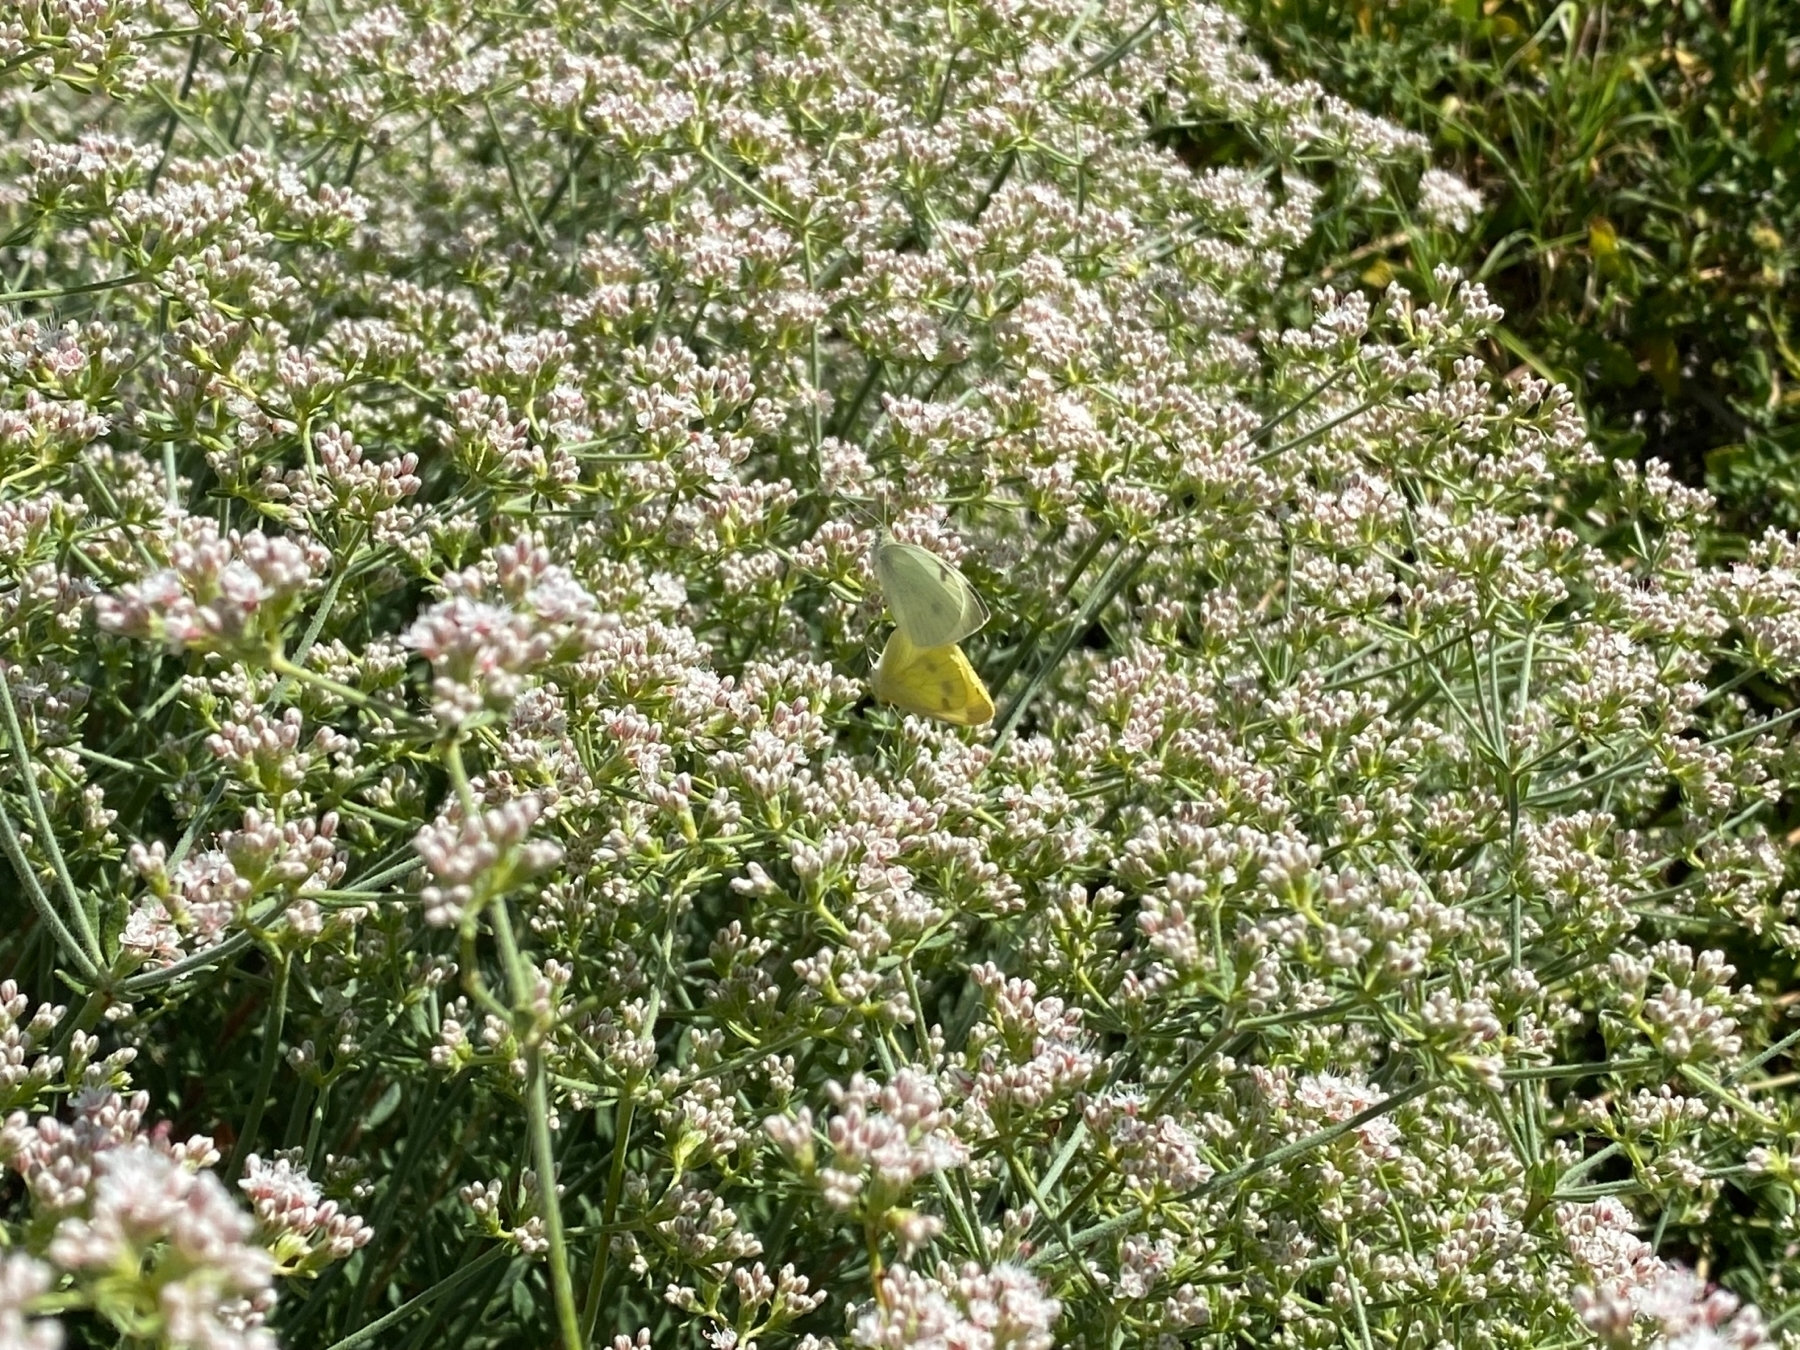 attached white and yellow butterflies on a bed of white buckwheat flowers